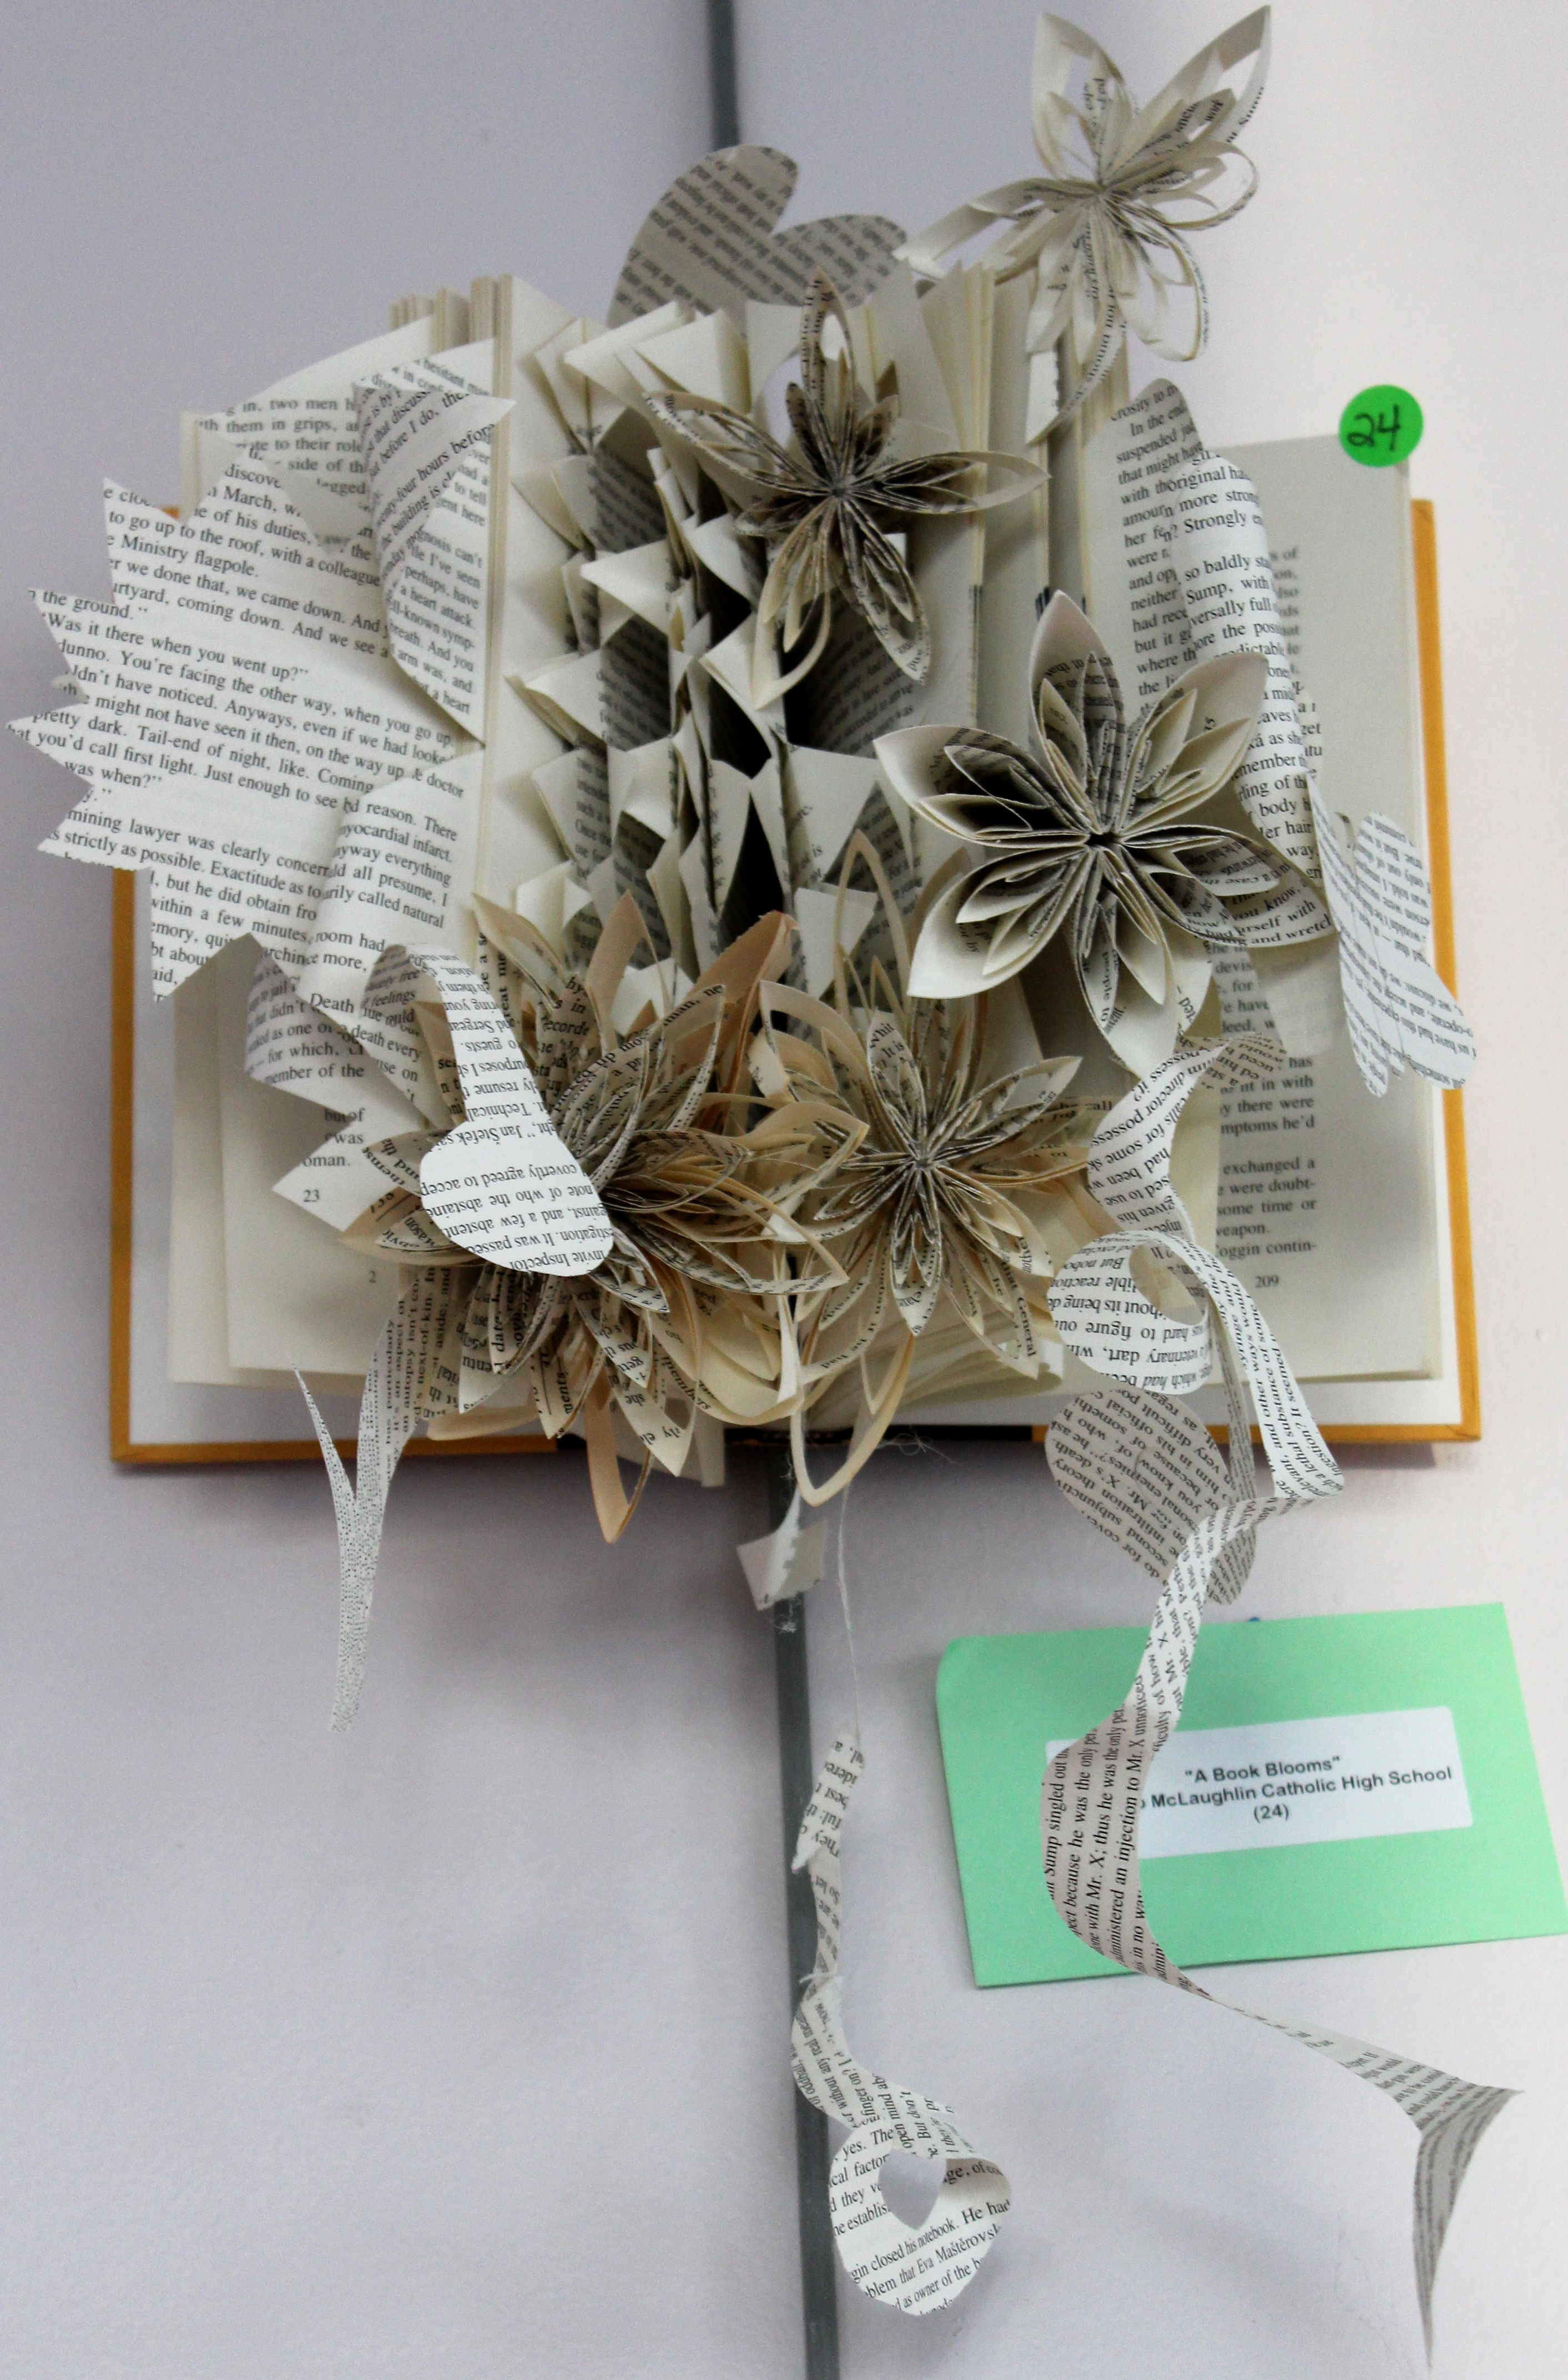 3rd place - A Book Blooms - Copy.jpg